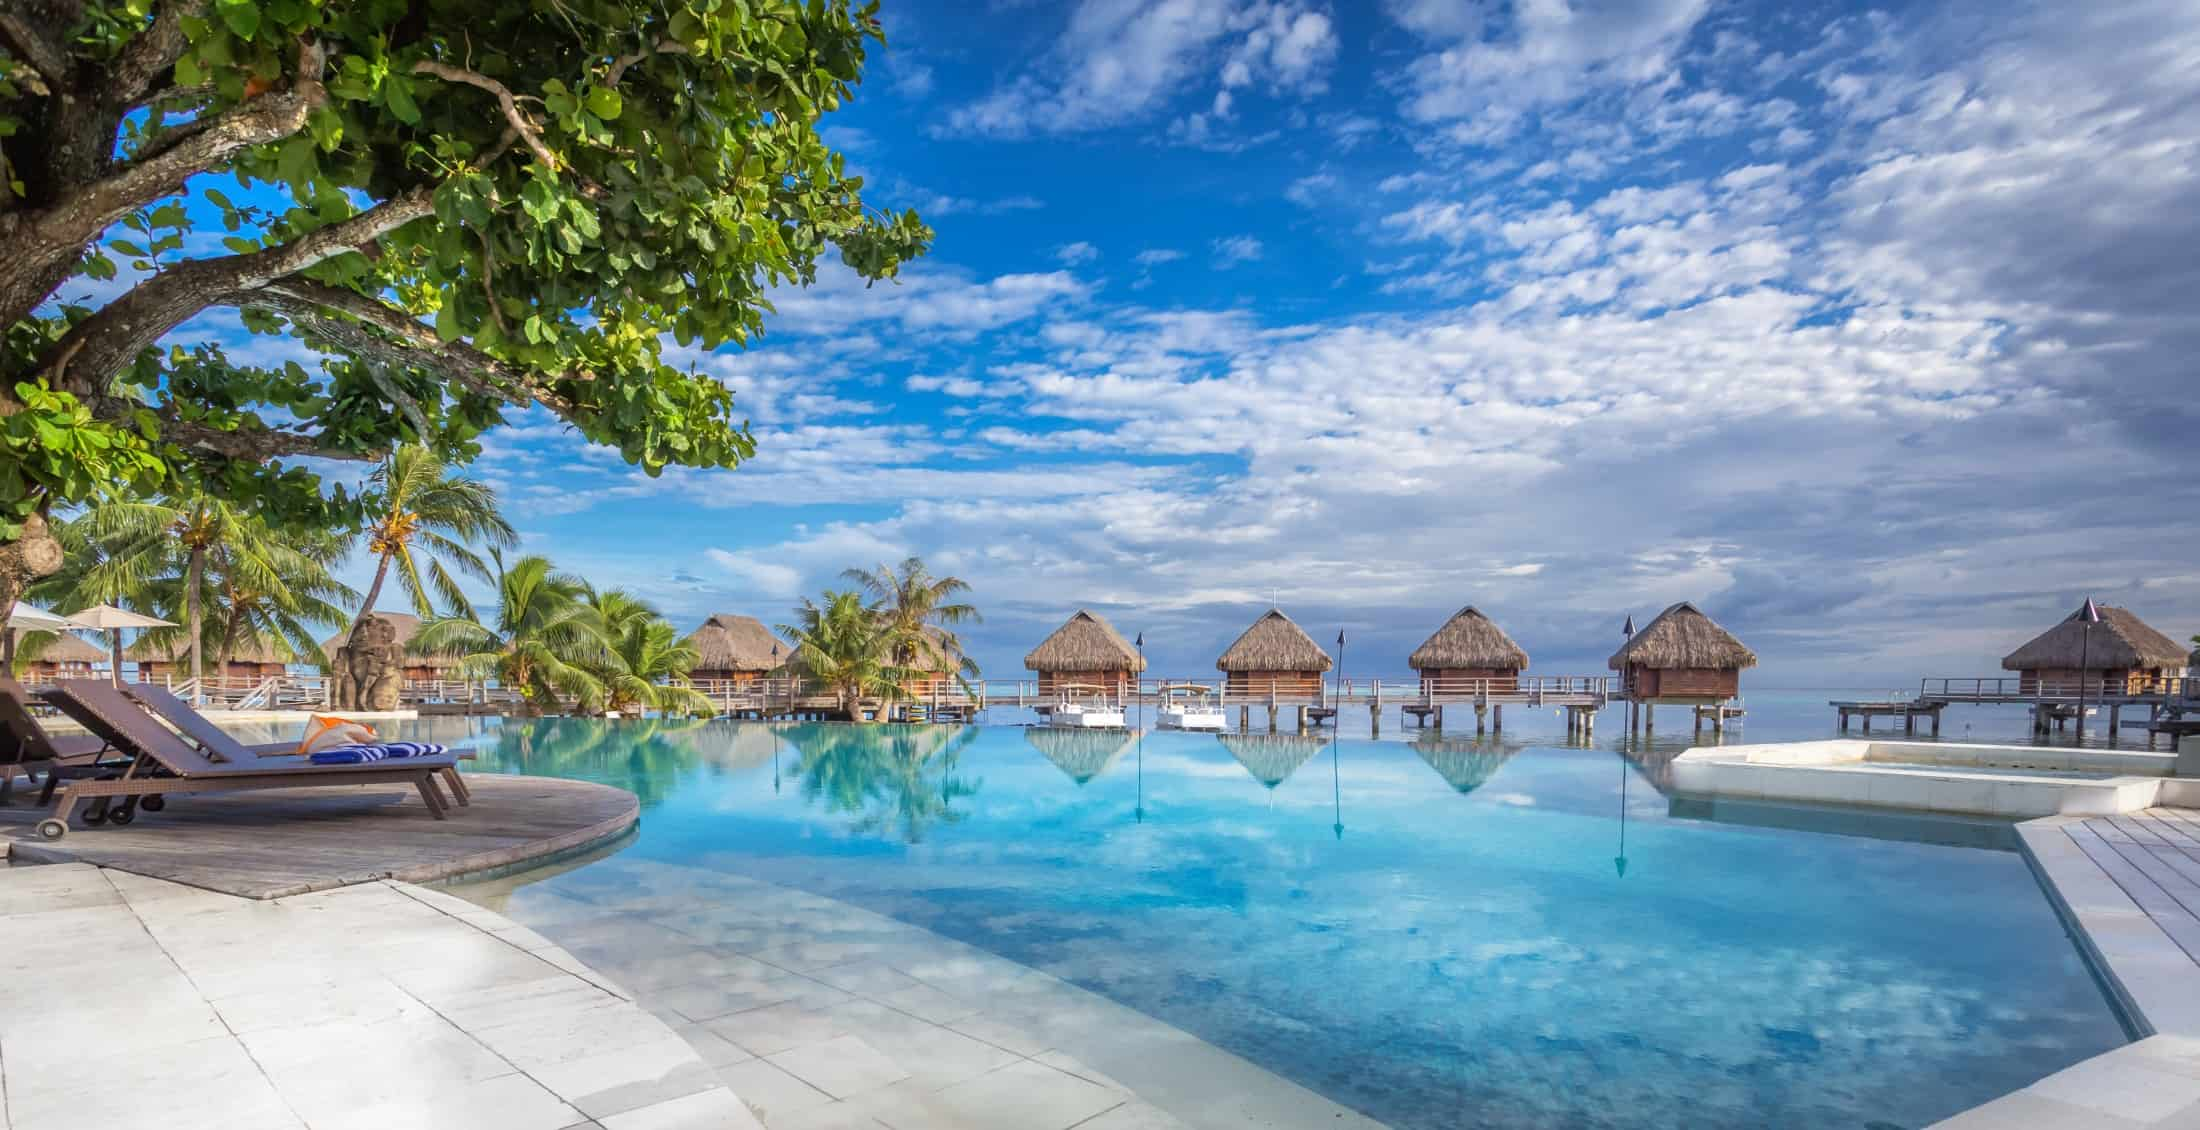 Image of overwater bungalows